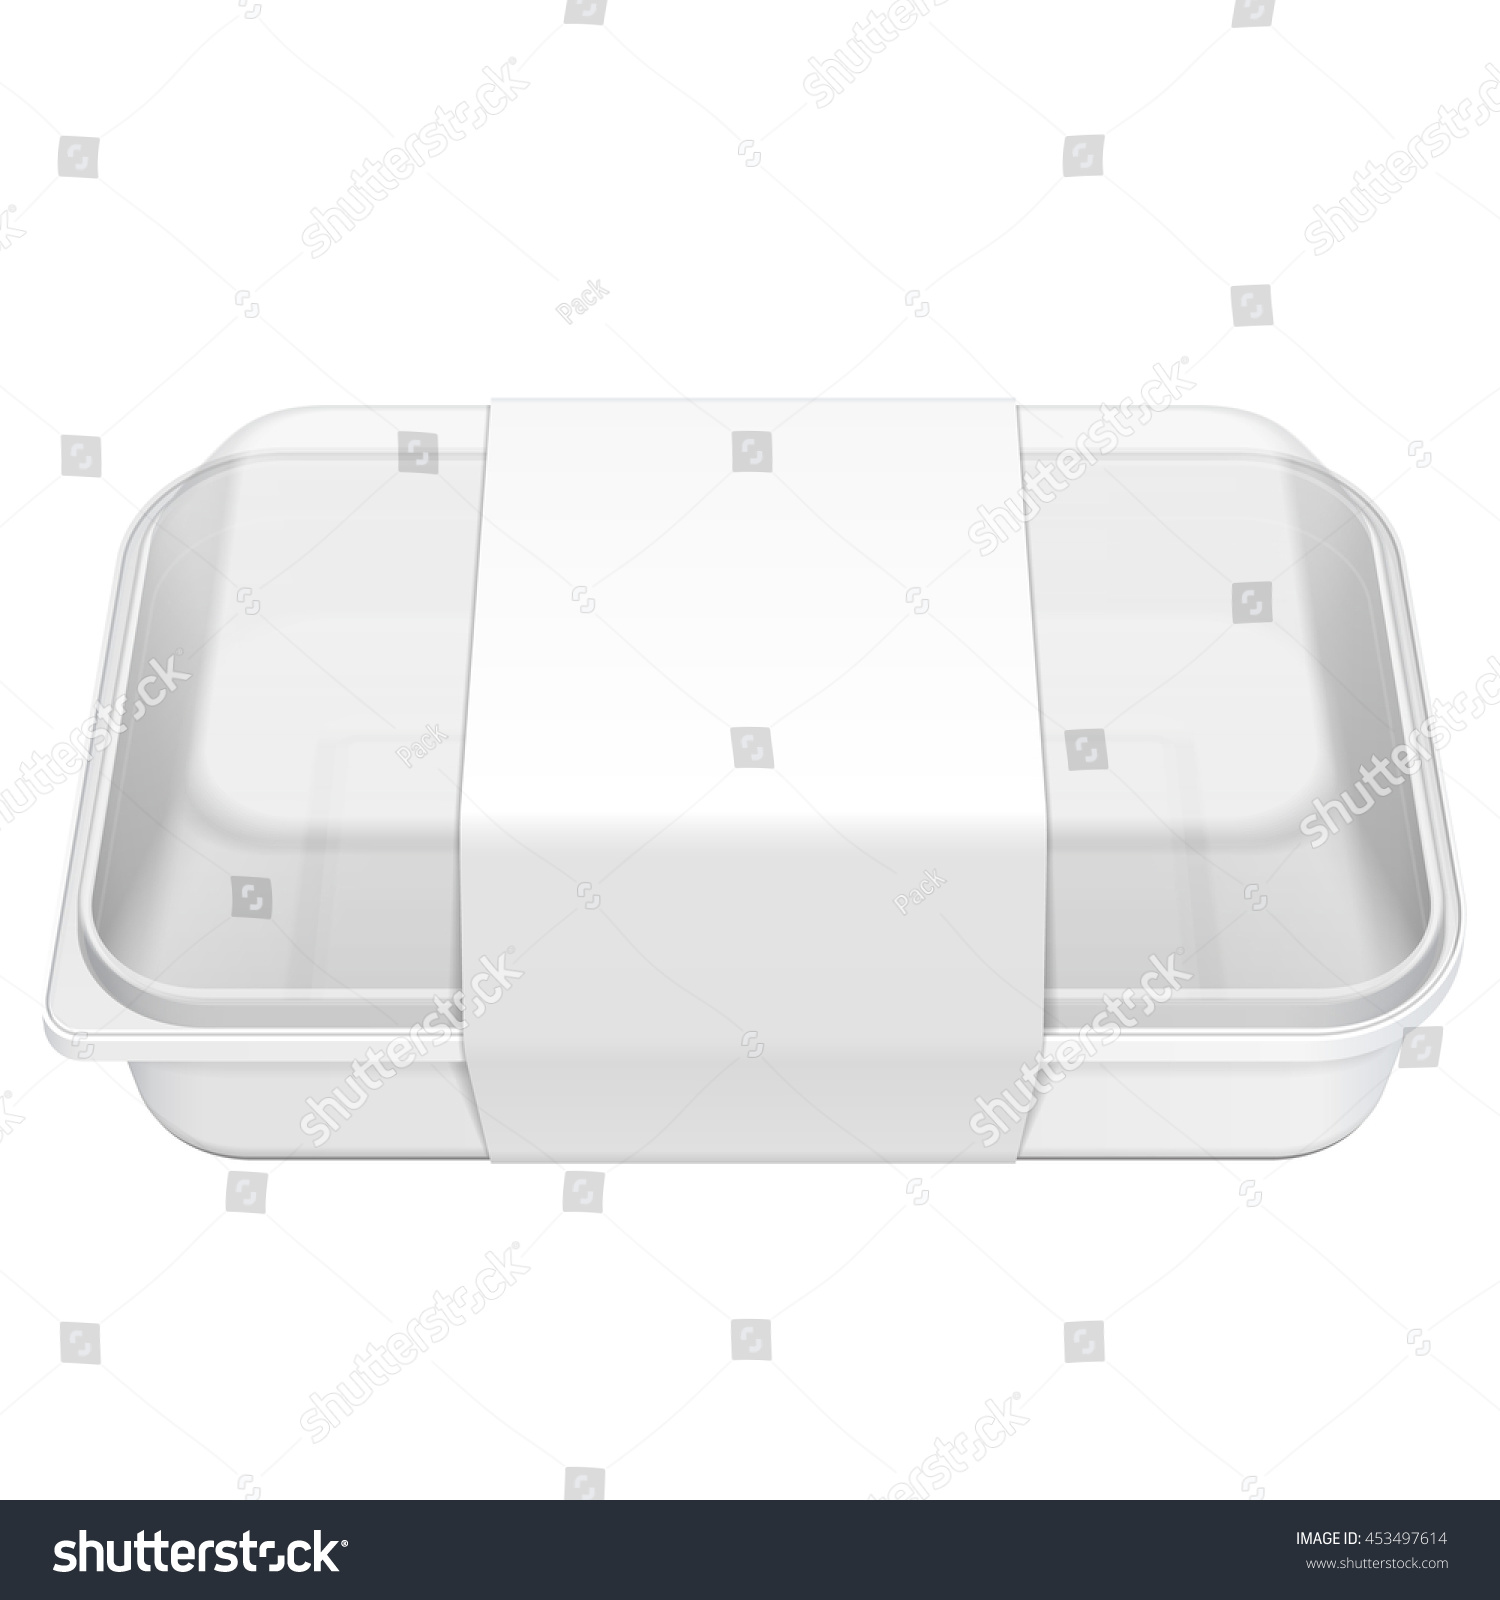 Empty Blank Styrofoam Plastic Food Tray Container Box With Lid Cover Lable Illustration Isolated On White Background Mock Up Template Ready For Your Design Vector EPS10